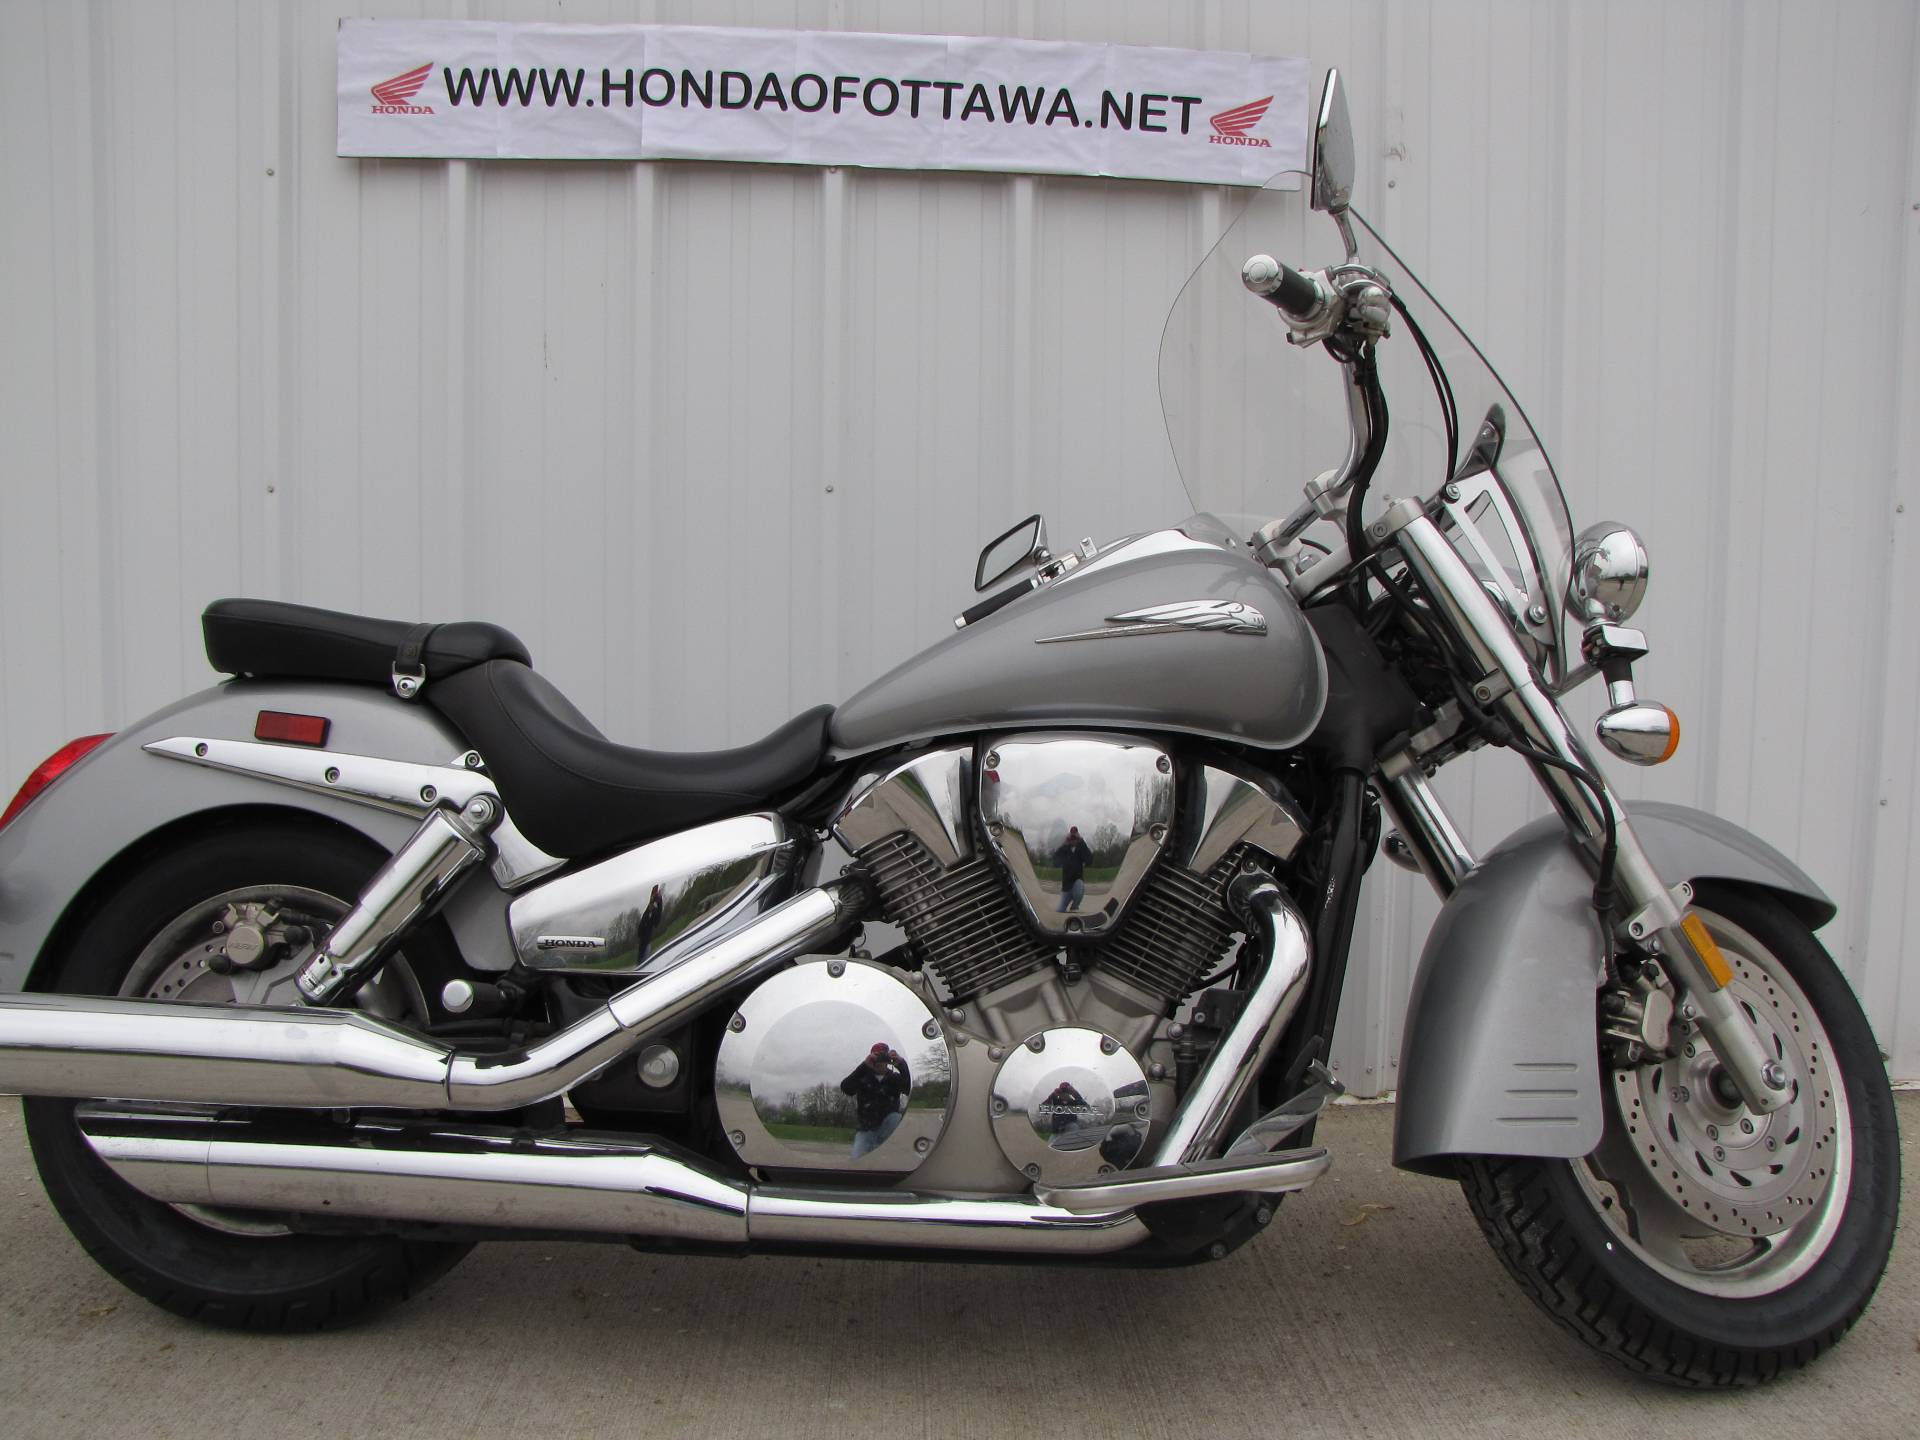 2005 Honda VTX™ 1300R in Ottawa, Ohio - Photo 2